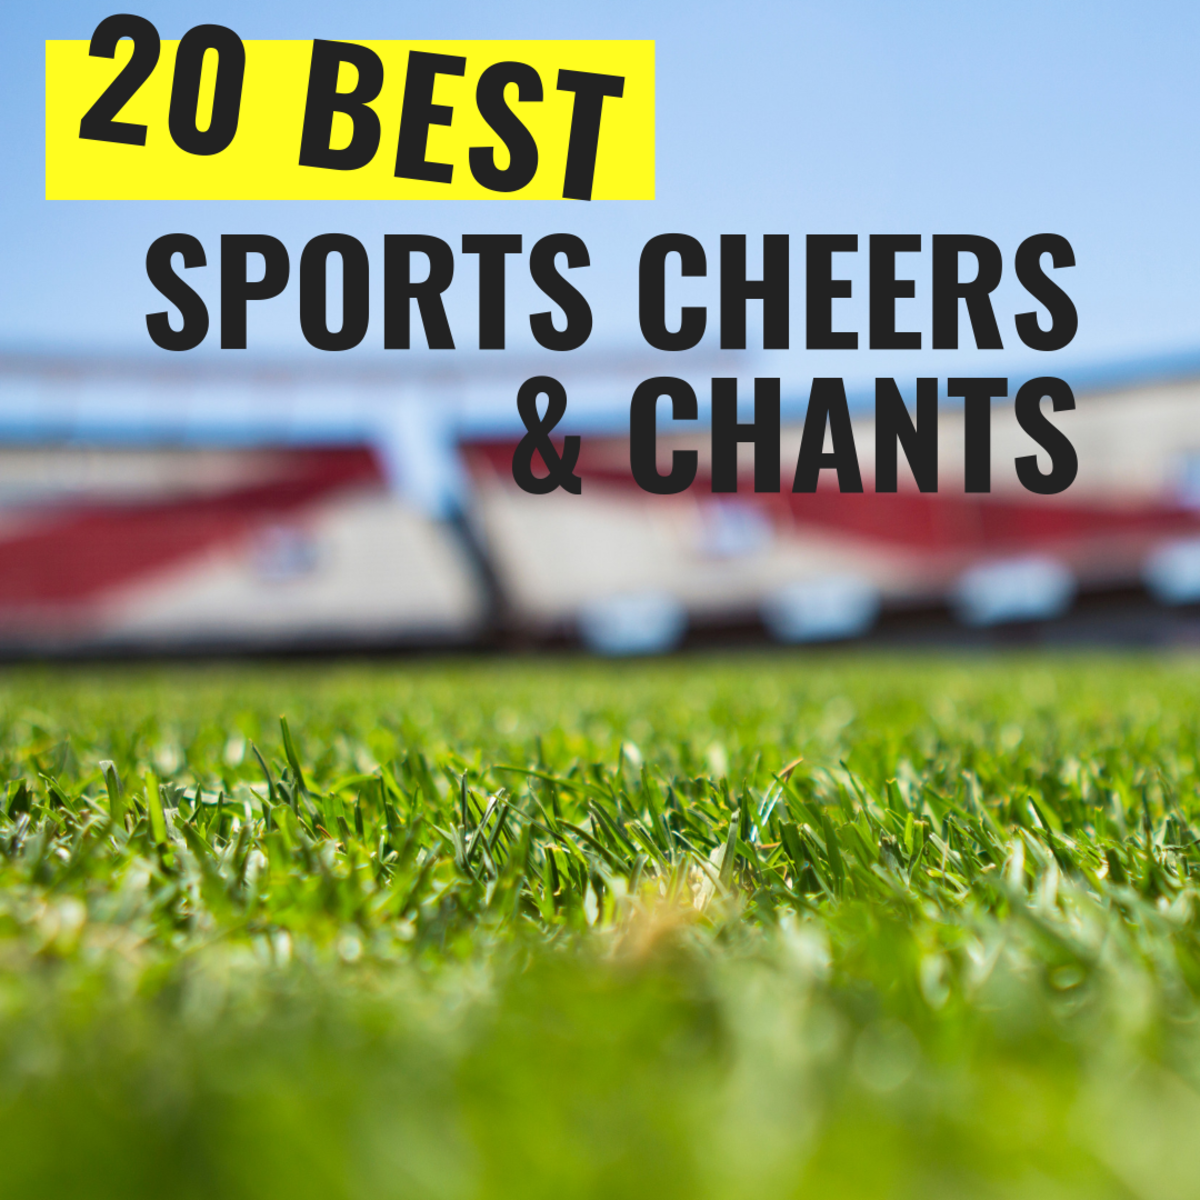 Boost team spirit with these awesome cheers!